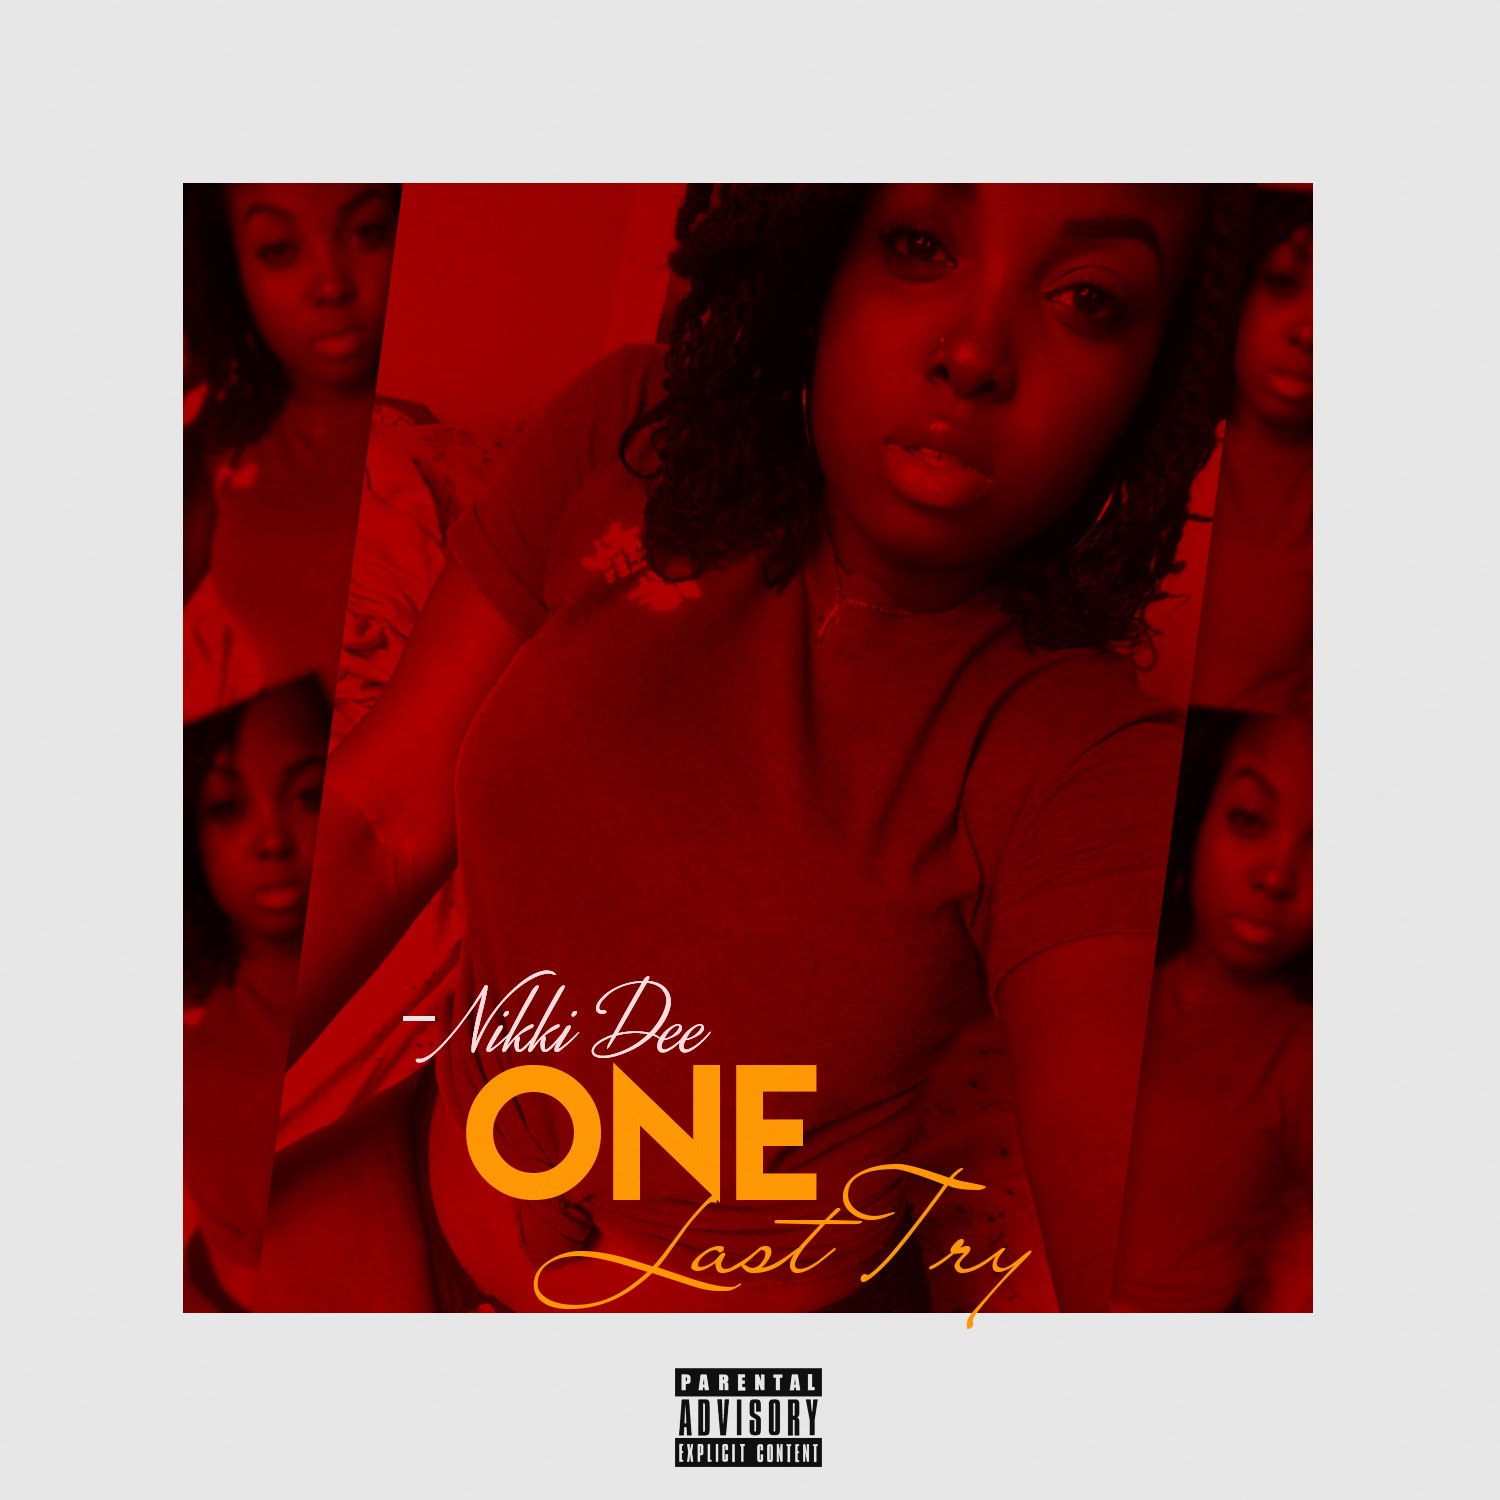 Nikki Dee – ONE LAST TRY